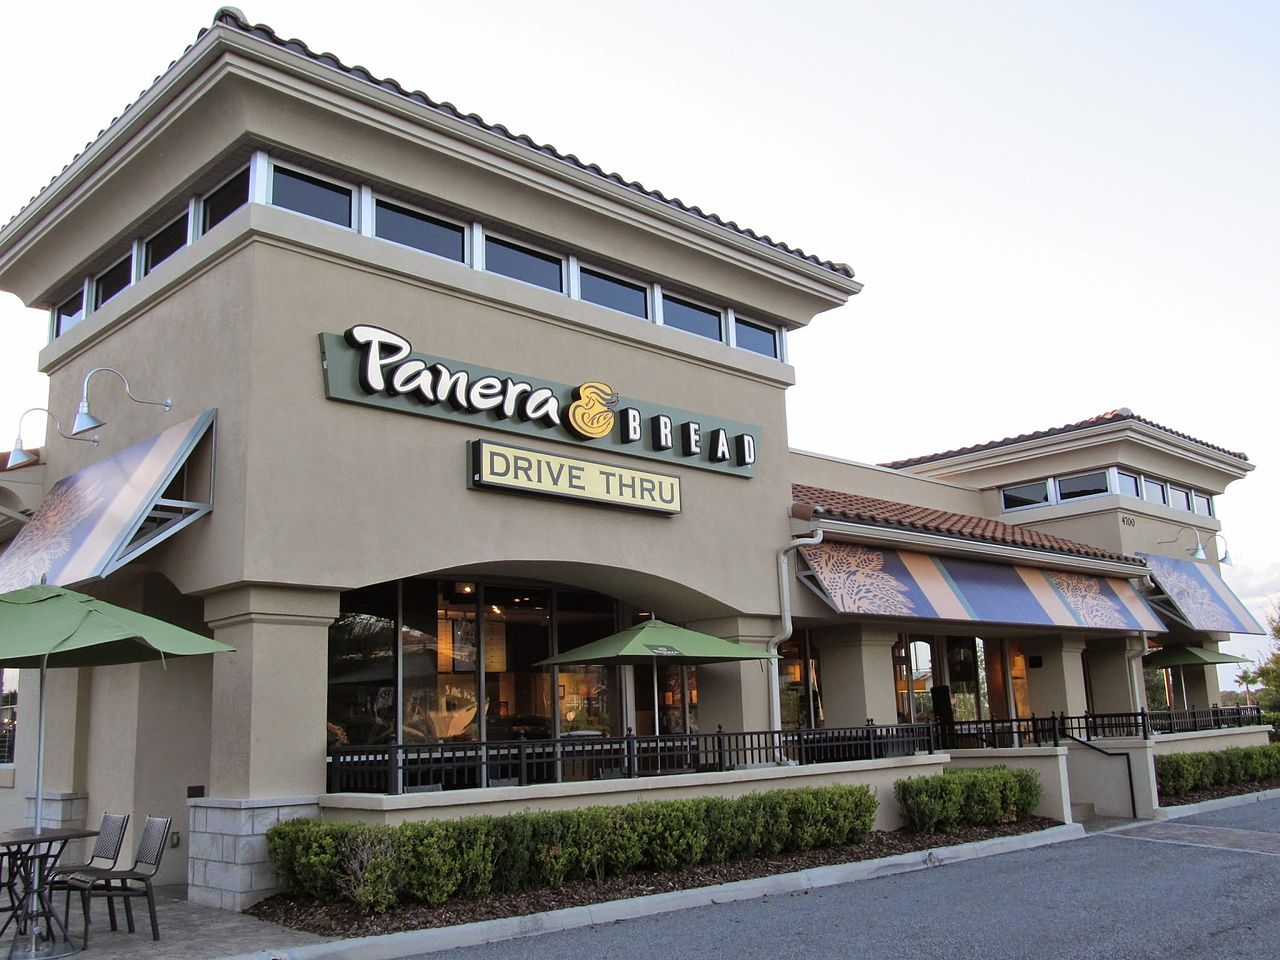 Panera highlights its focus on Cleaner food and drinks